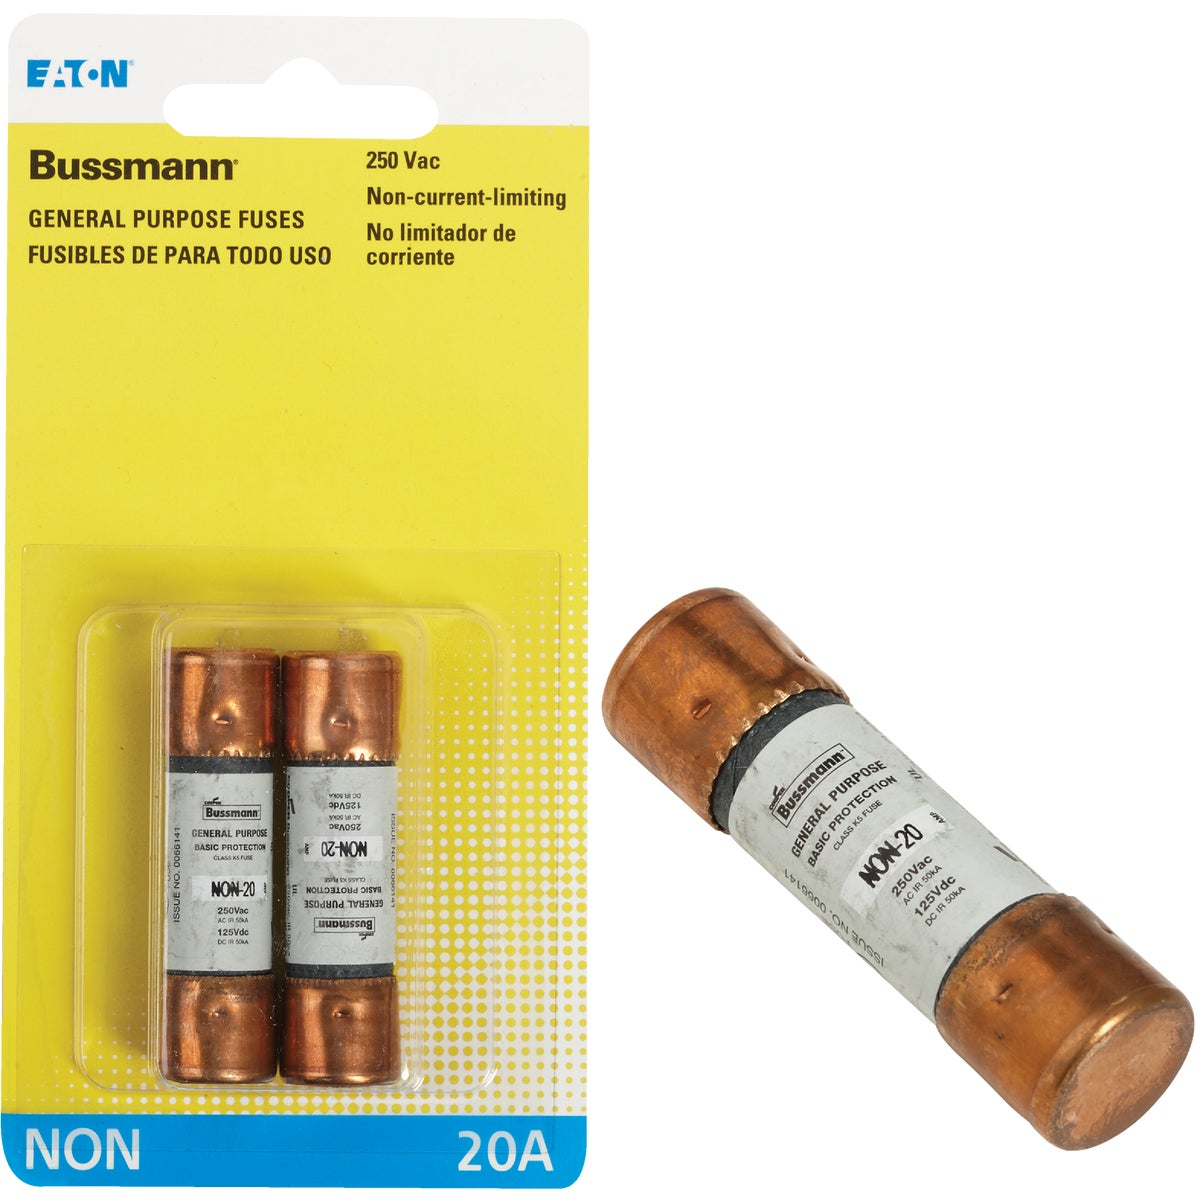 20A NON CARTRIDGE FUSE